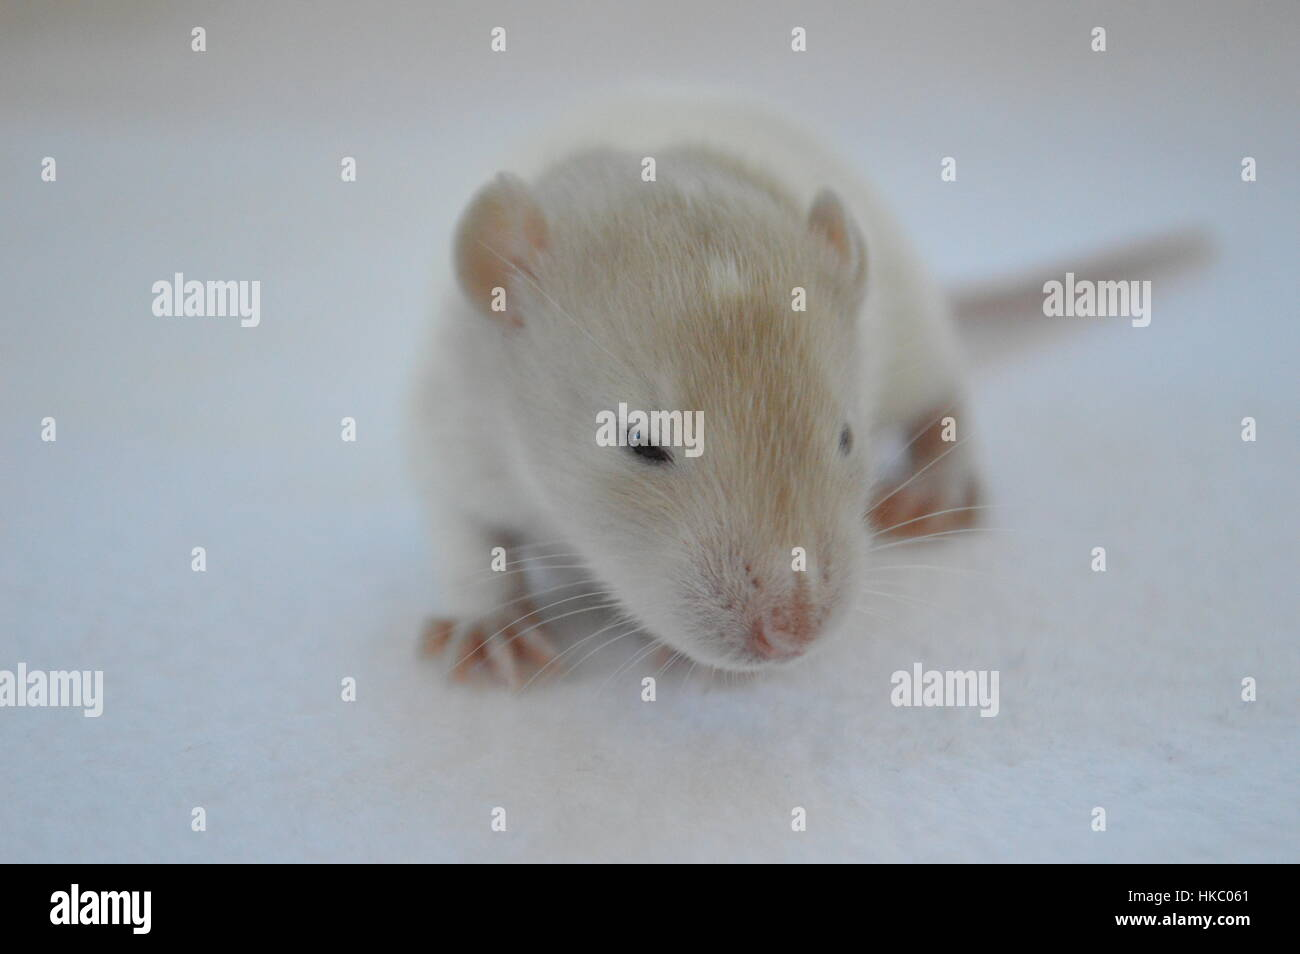 Baby rat on white background - Stock Image